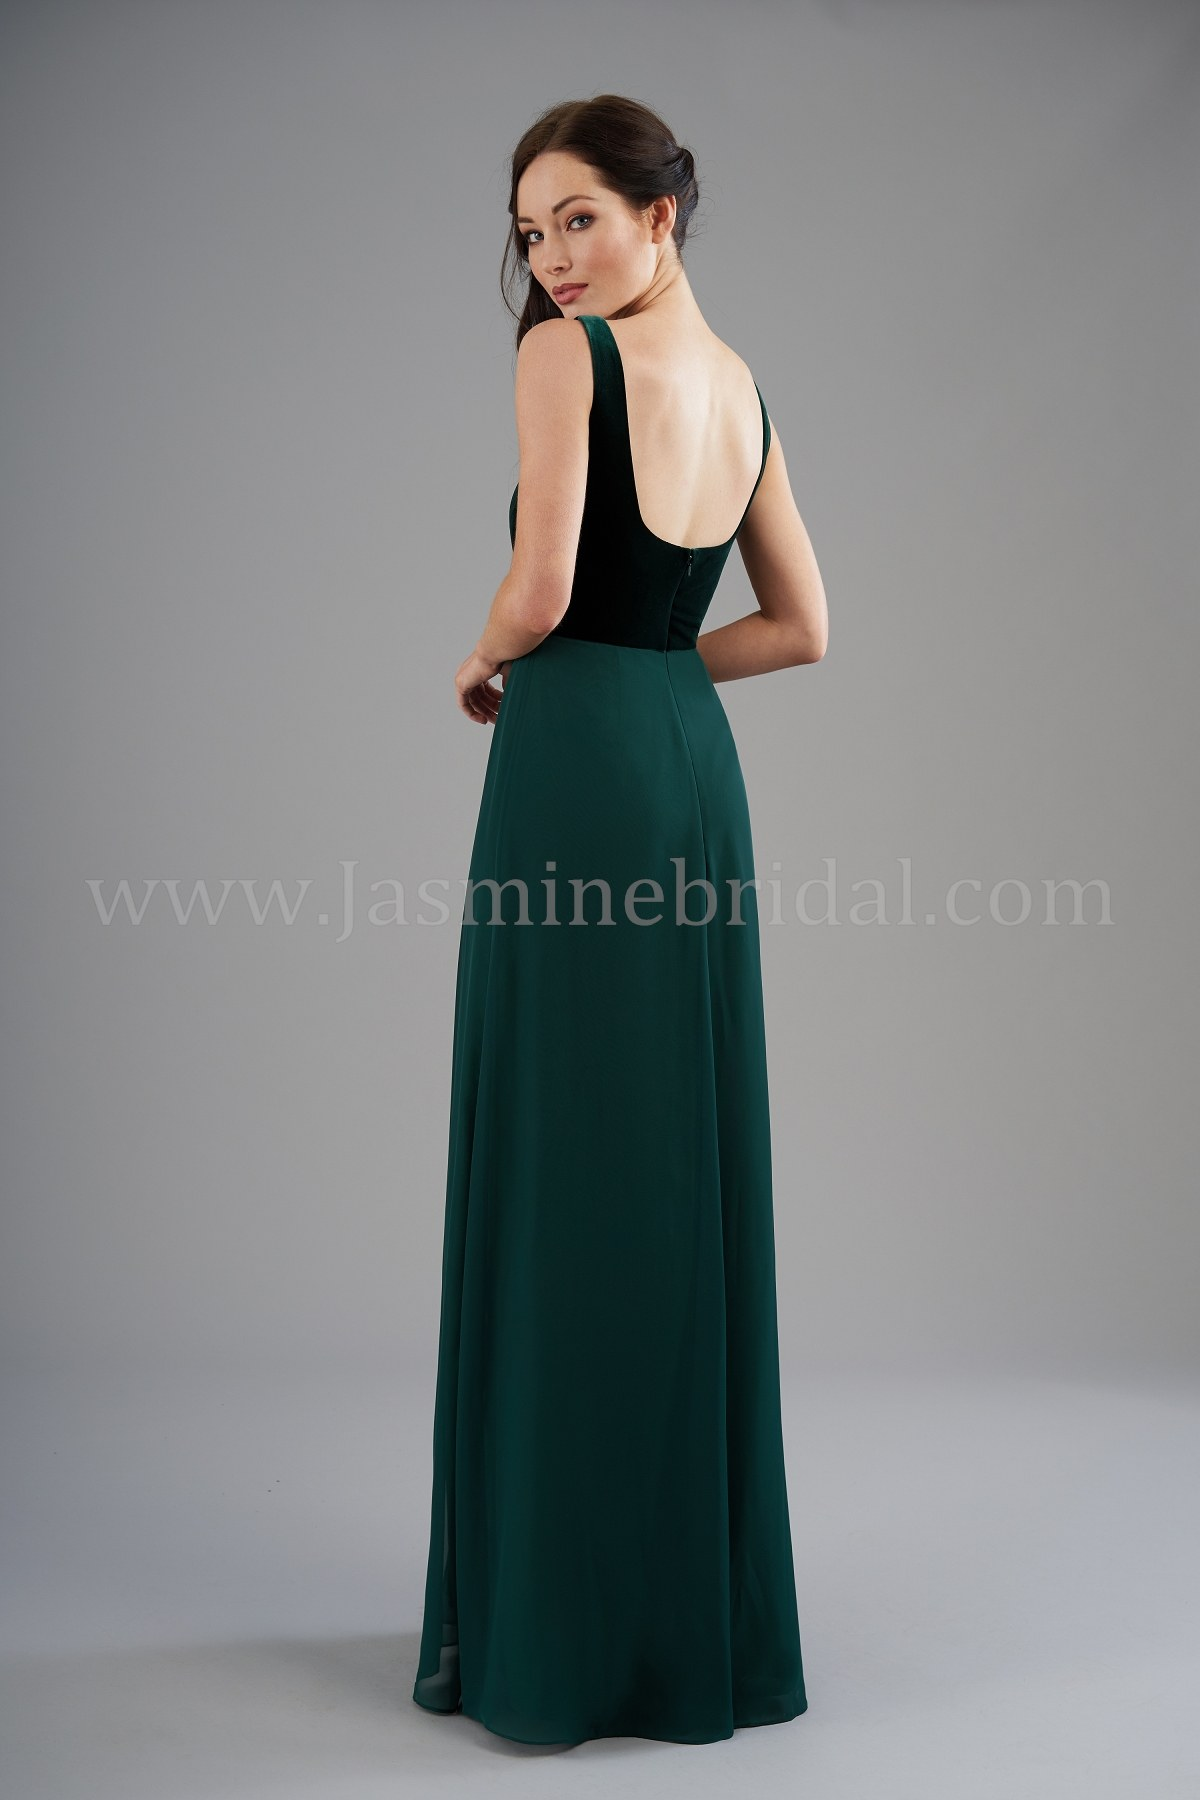 bridesmaid-dresses-B203055-B